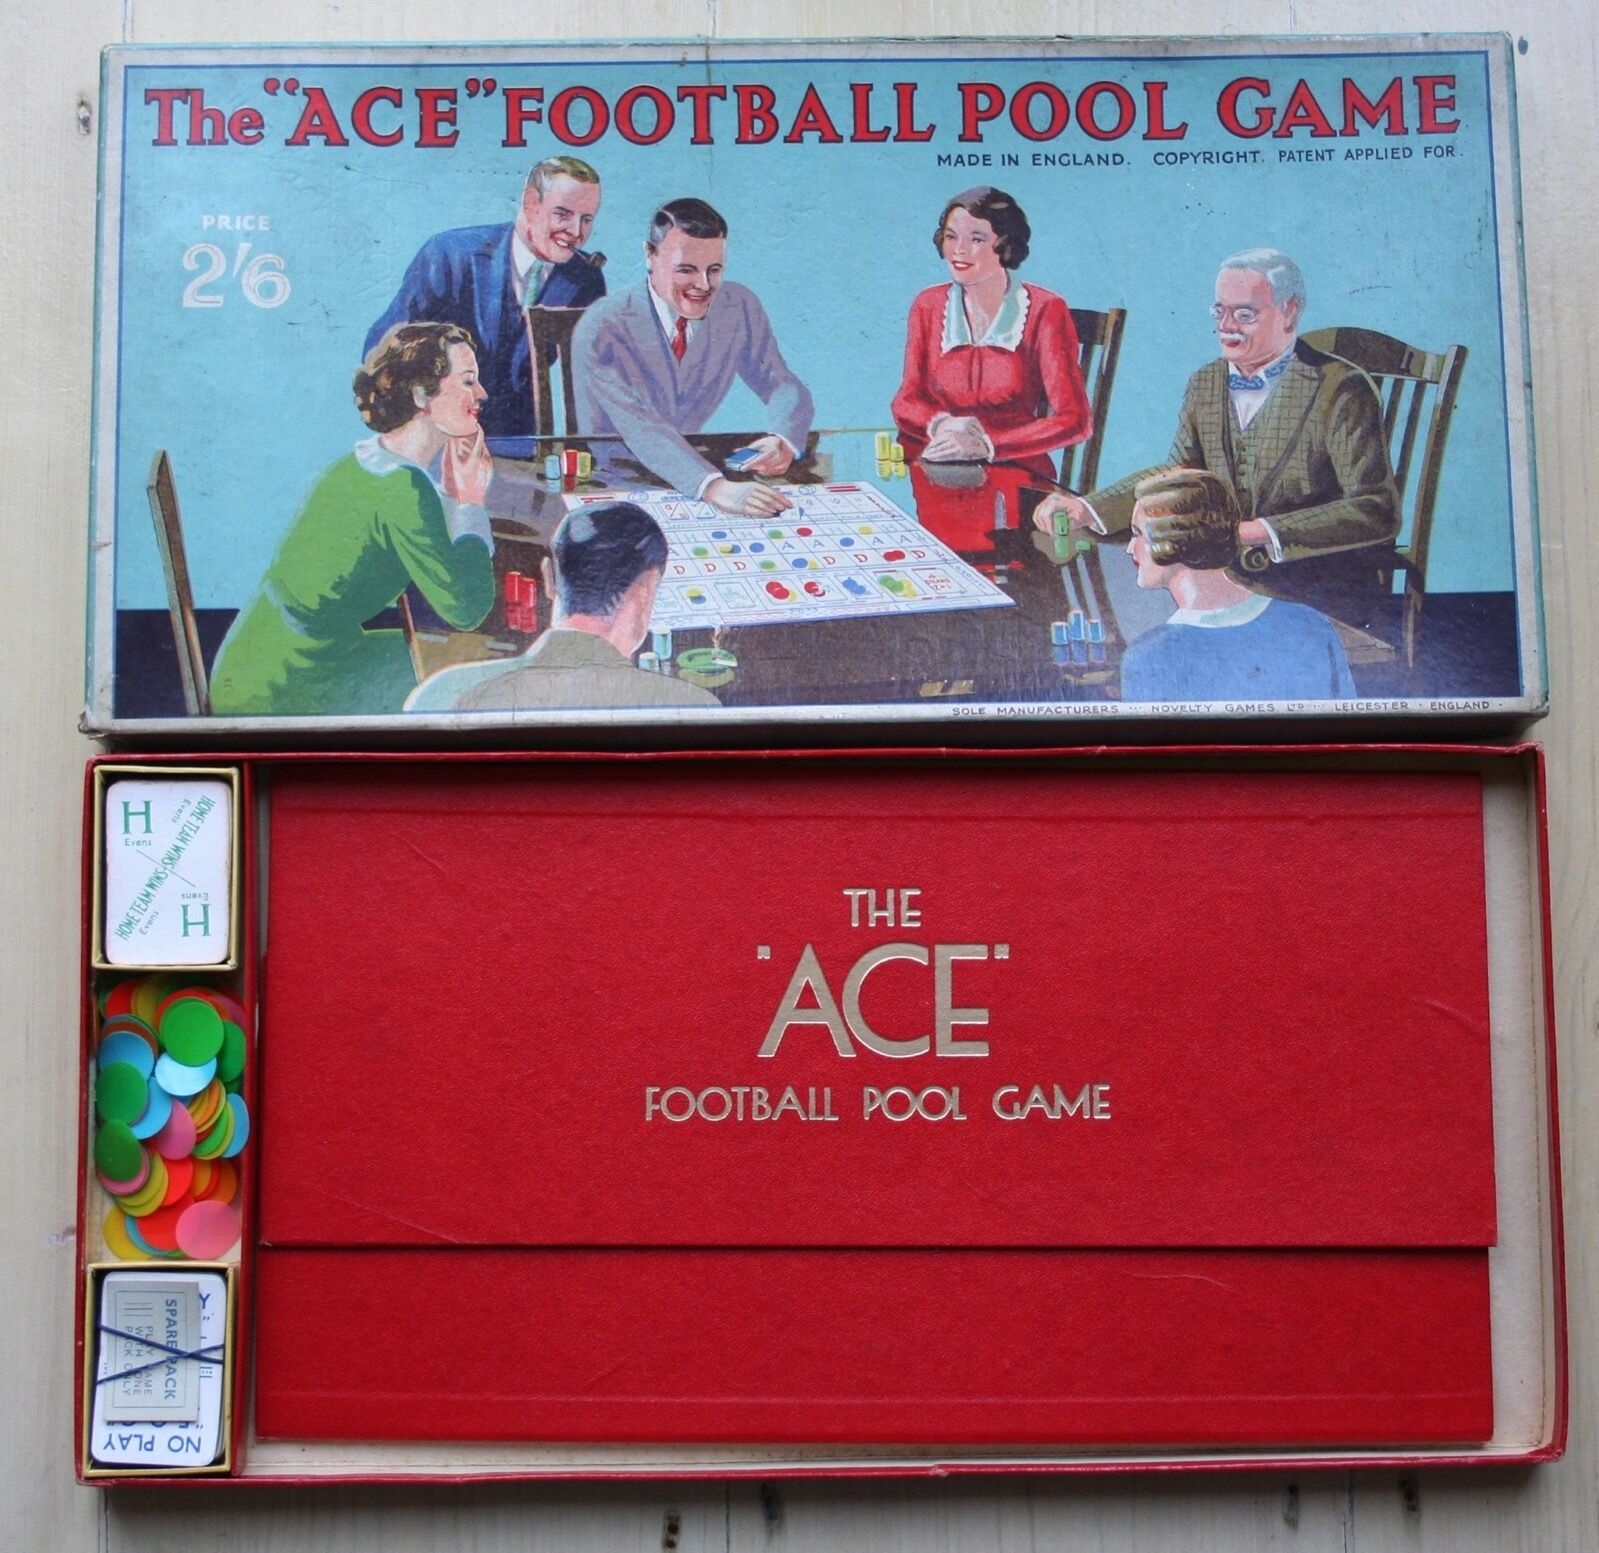 RARE - THE ACE FOOTBALL POOL GAME - NOVELTY GAMES LTD - c1938